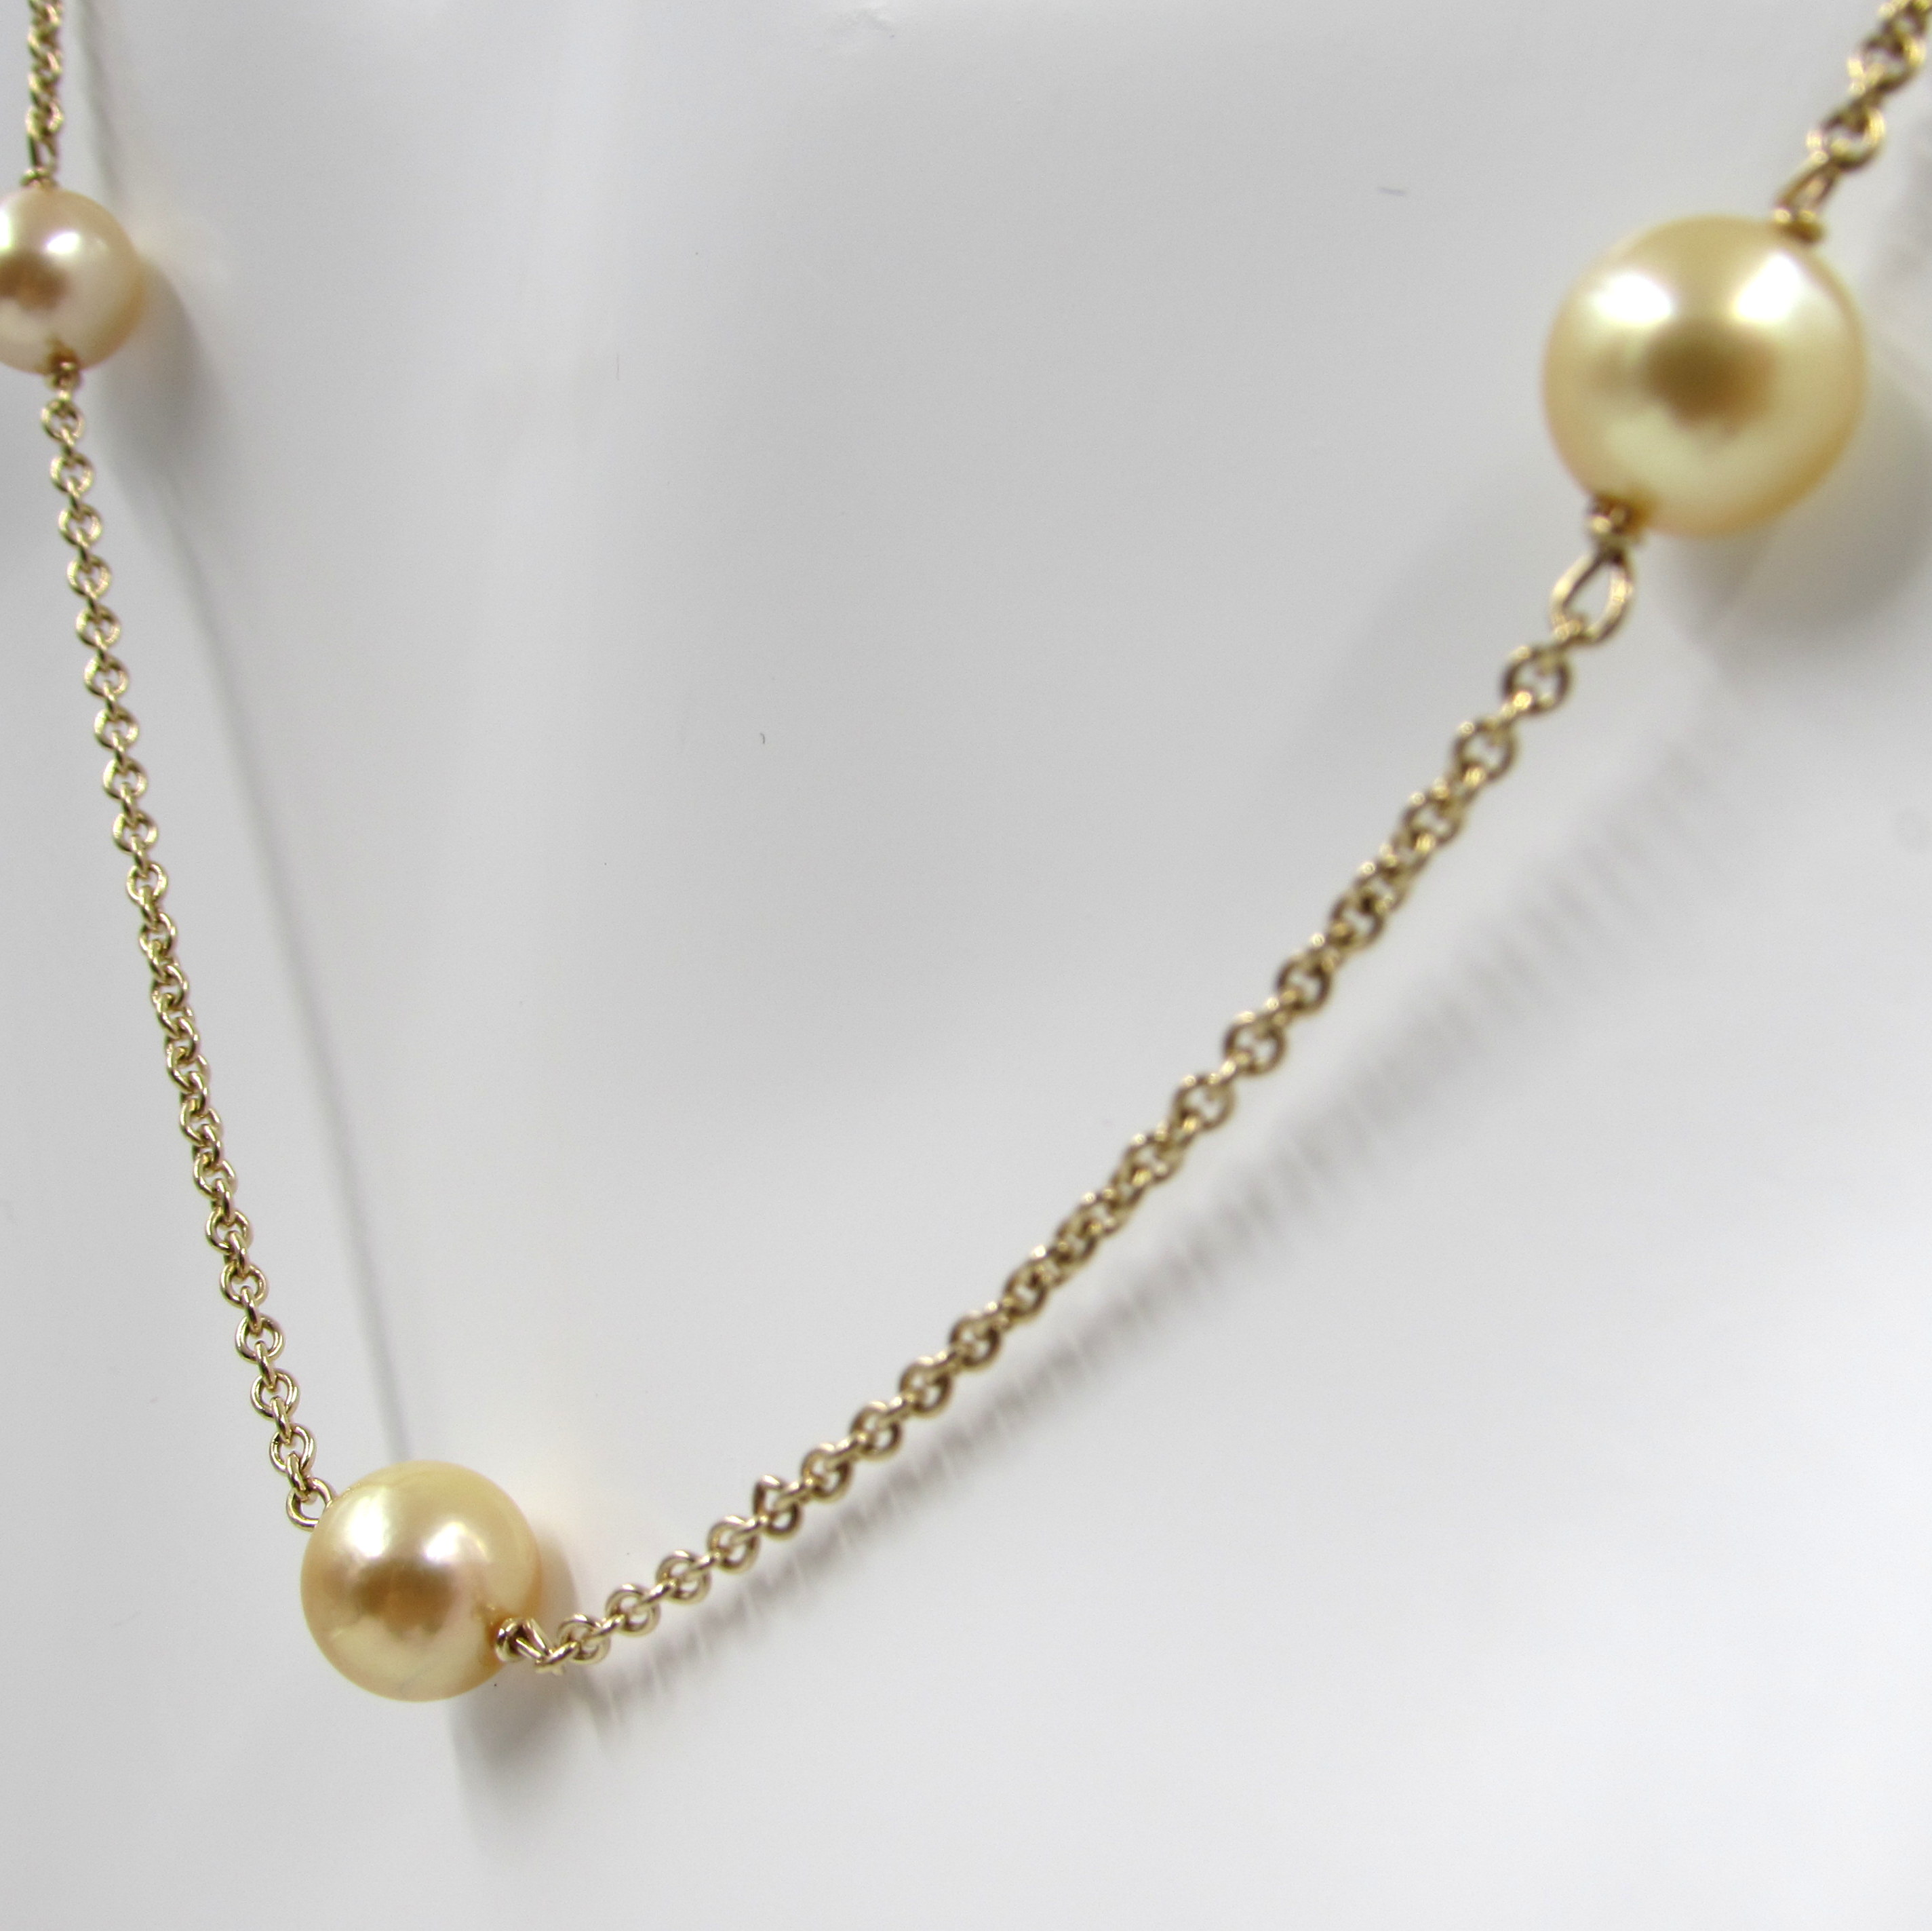 new pearls baroque south sea golden strands and pin reflection